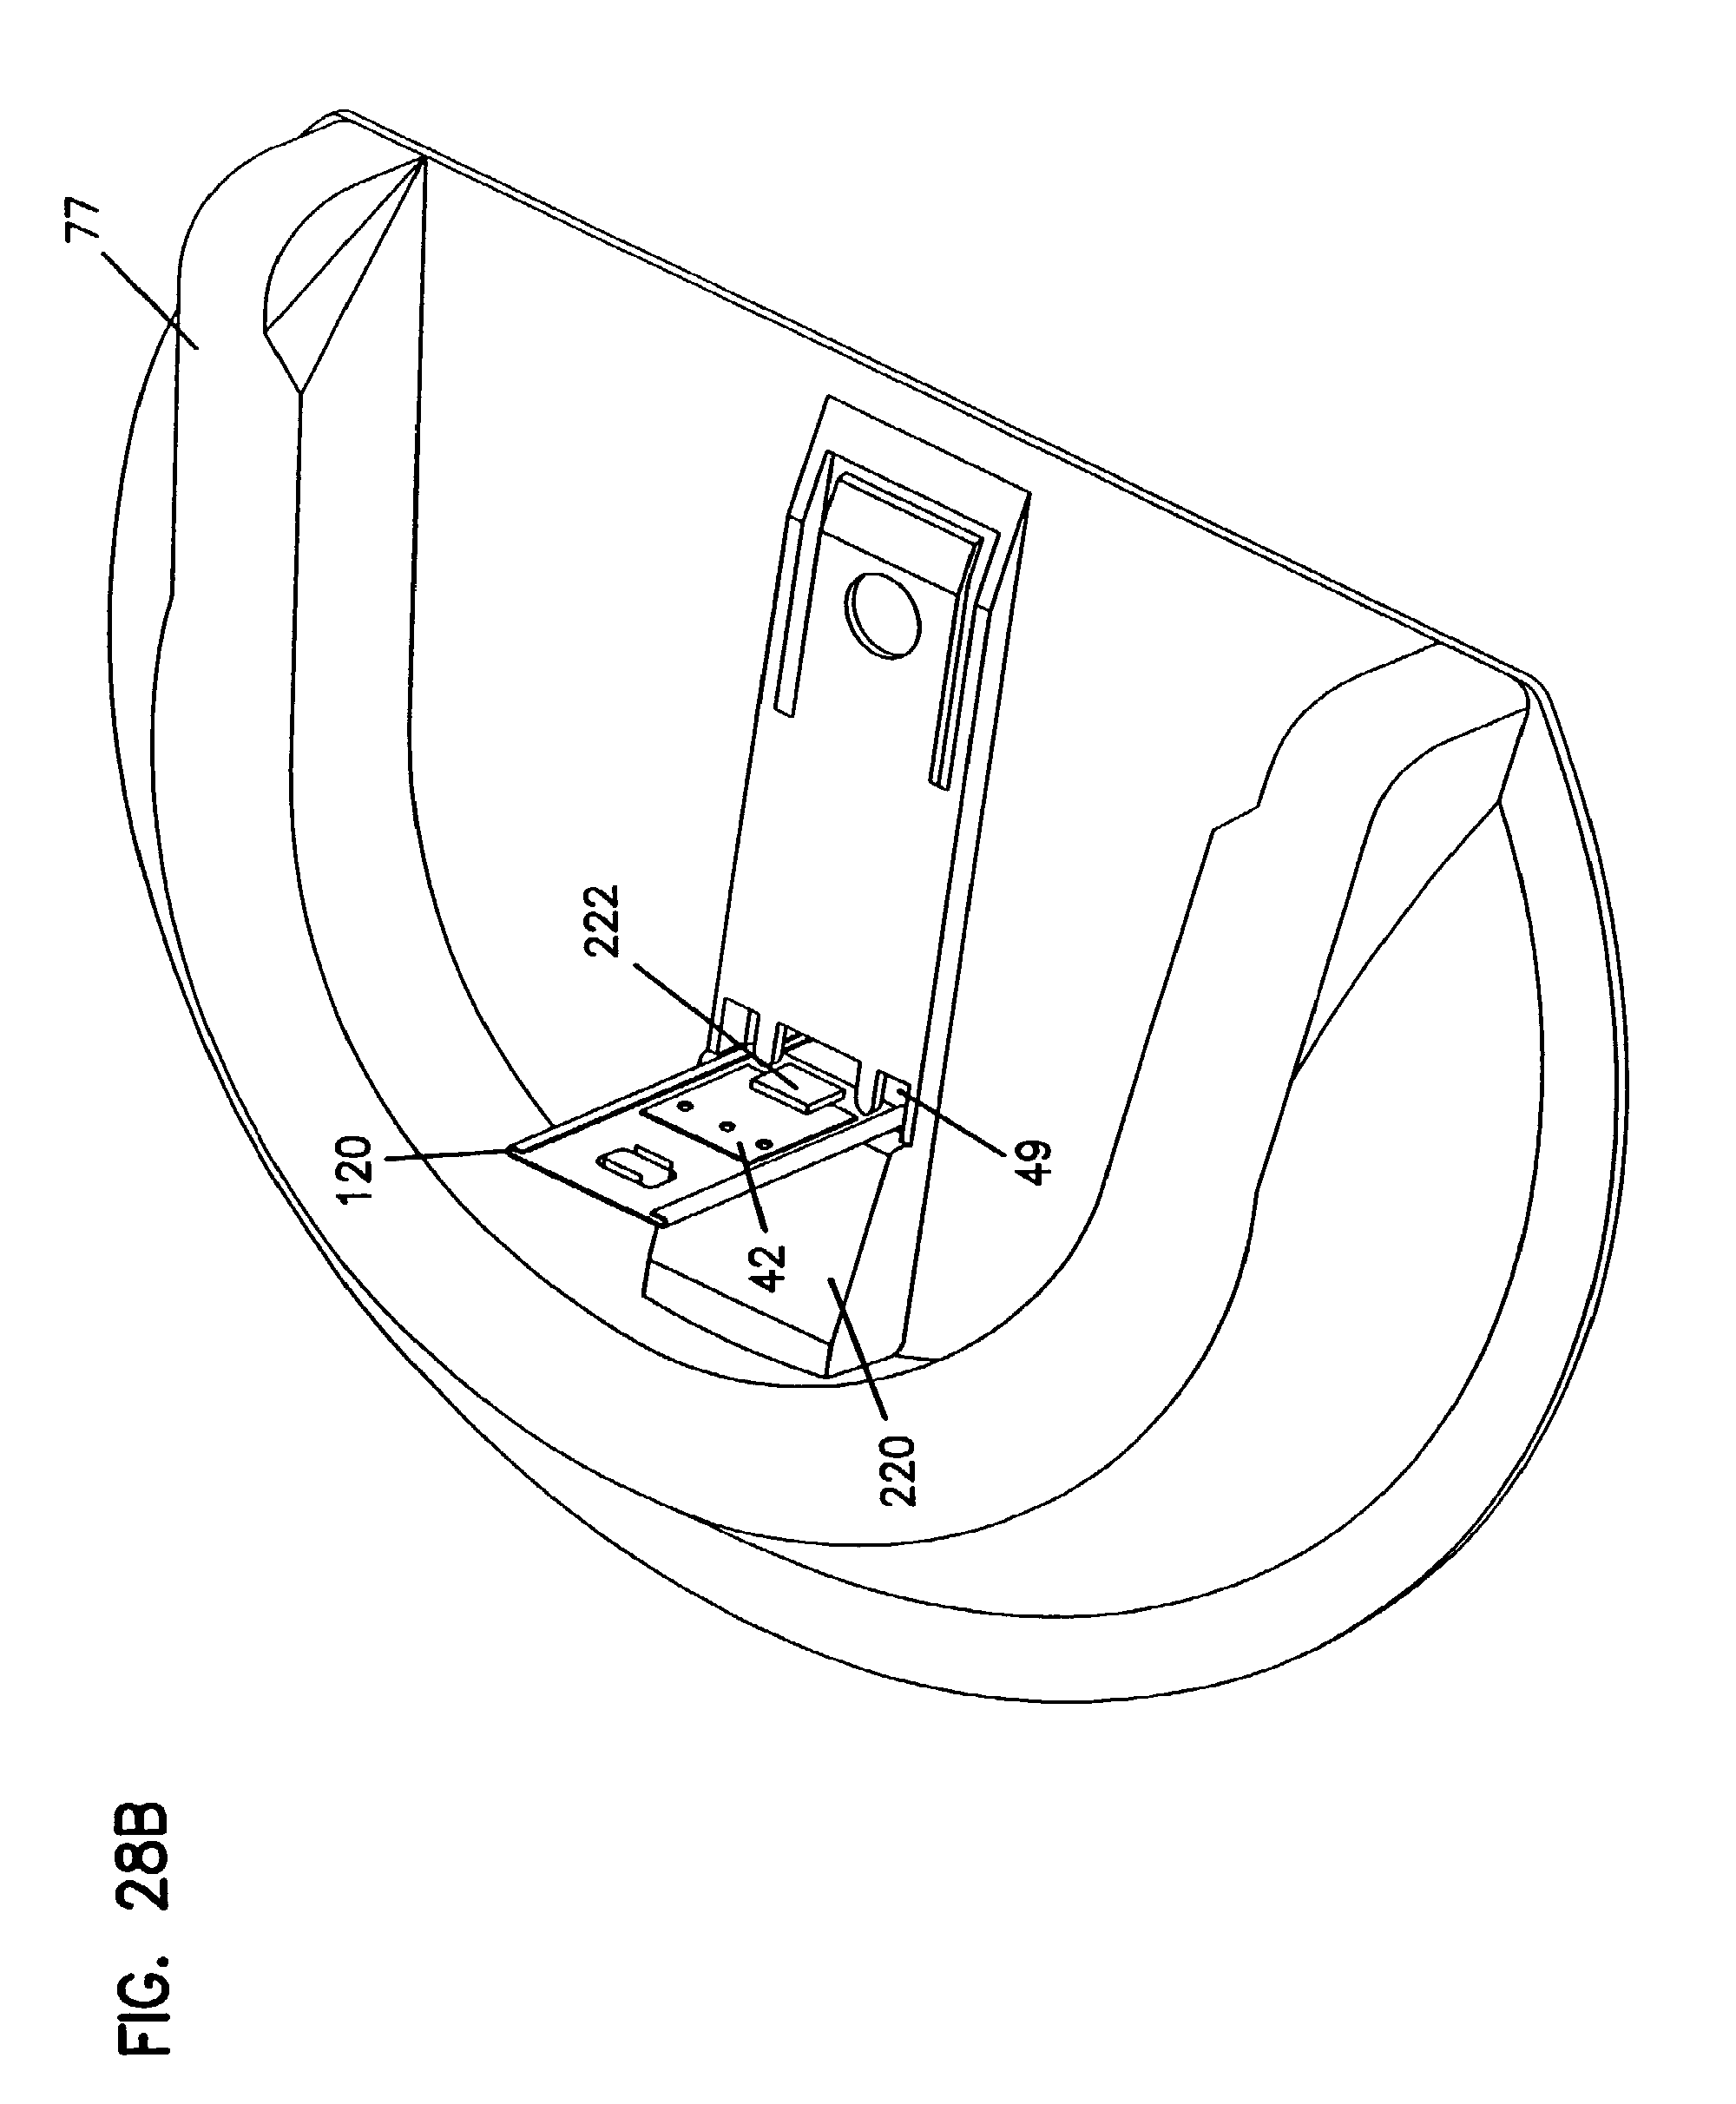 Us8226558b2 analyte monitoring device and methods of use patents